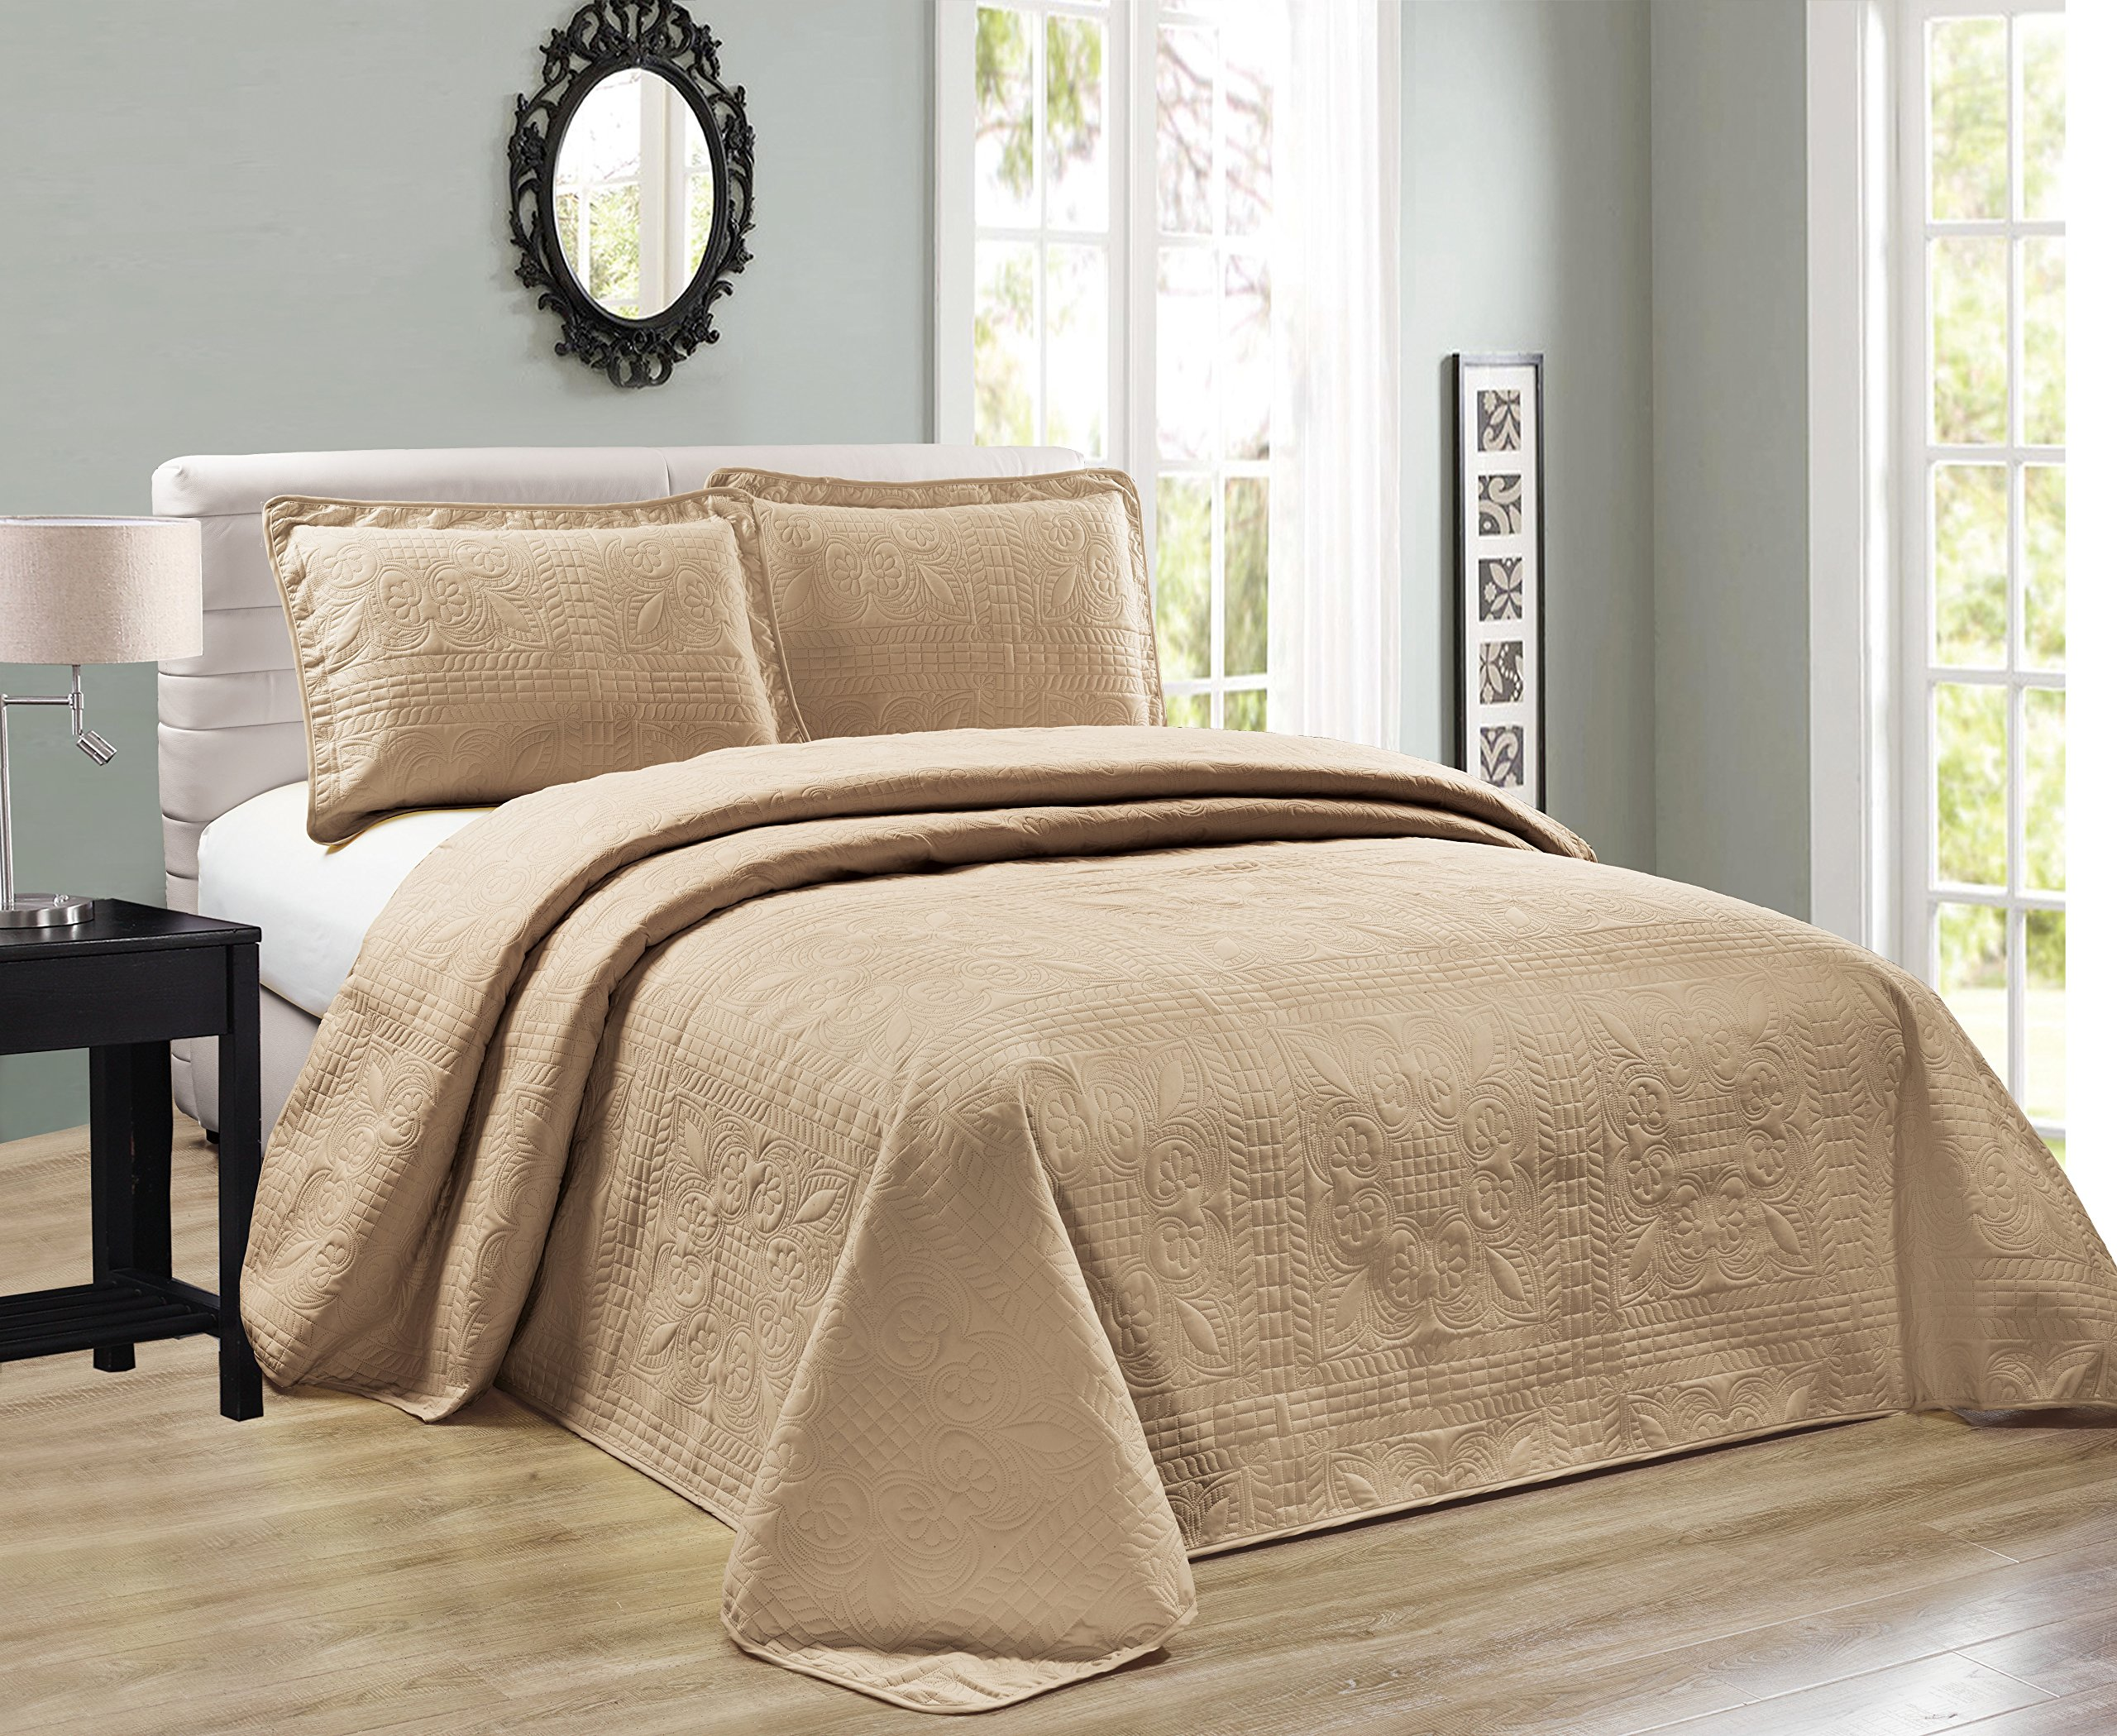 Elegant Home Beautiful Over Sized Taupe Solid Color Embossed Floral Striped 2 Piece Twin / Twin XL Size Coverlet Bedspread (Twin / Twin XL, Taupe)